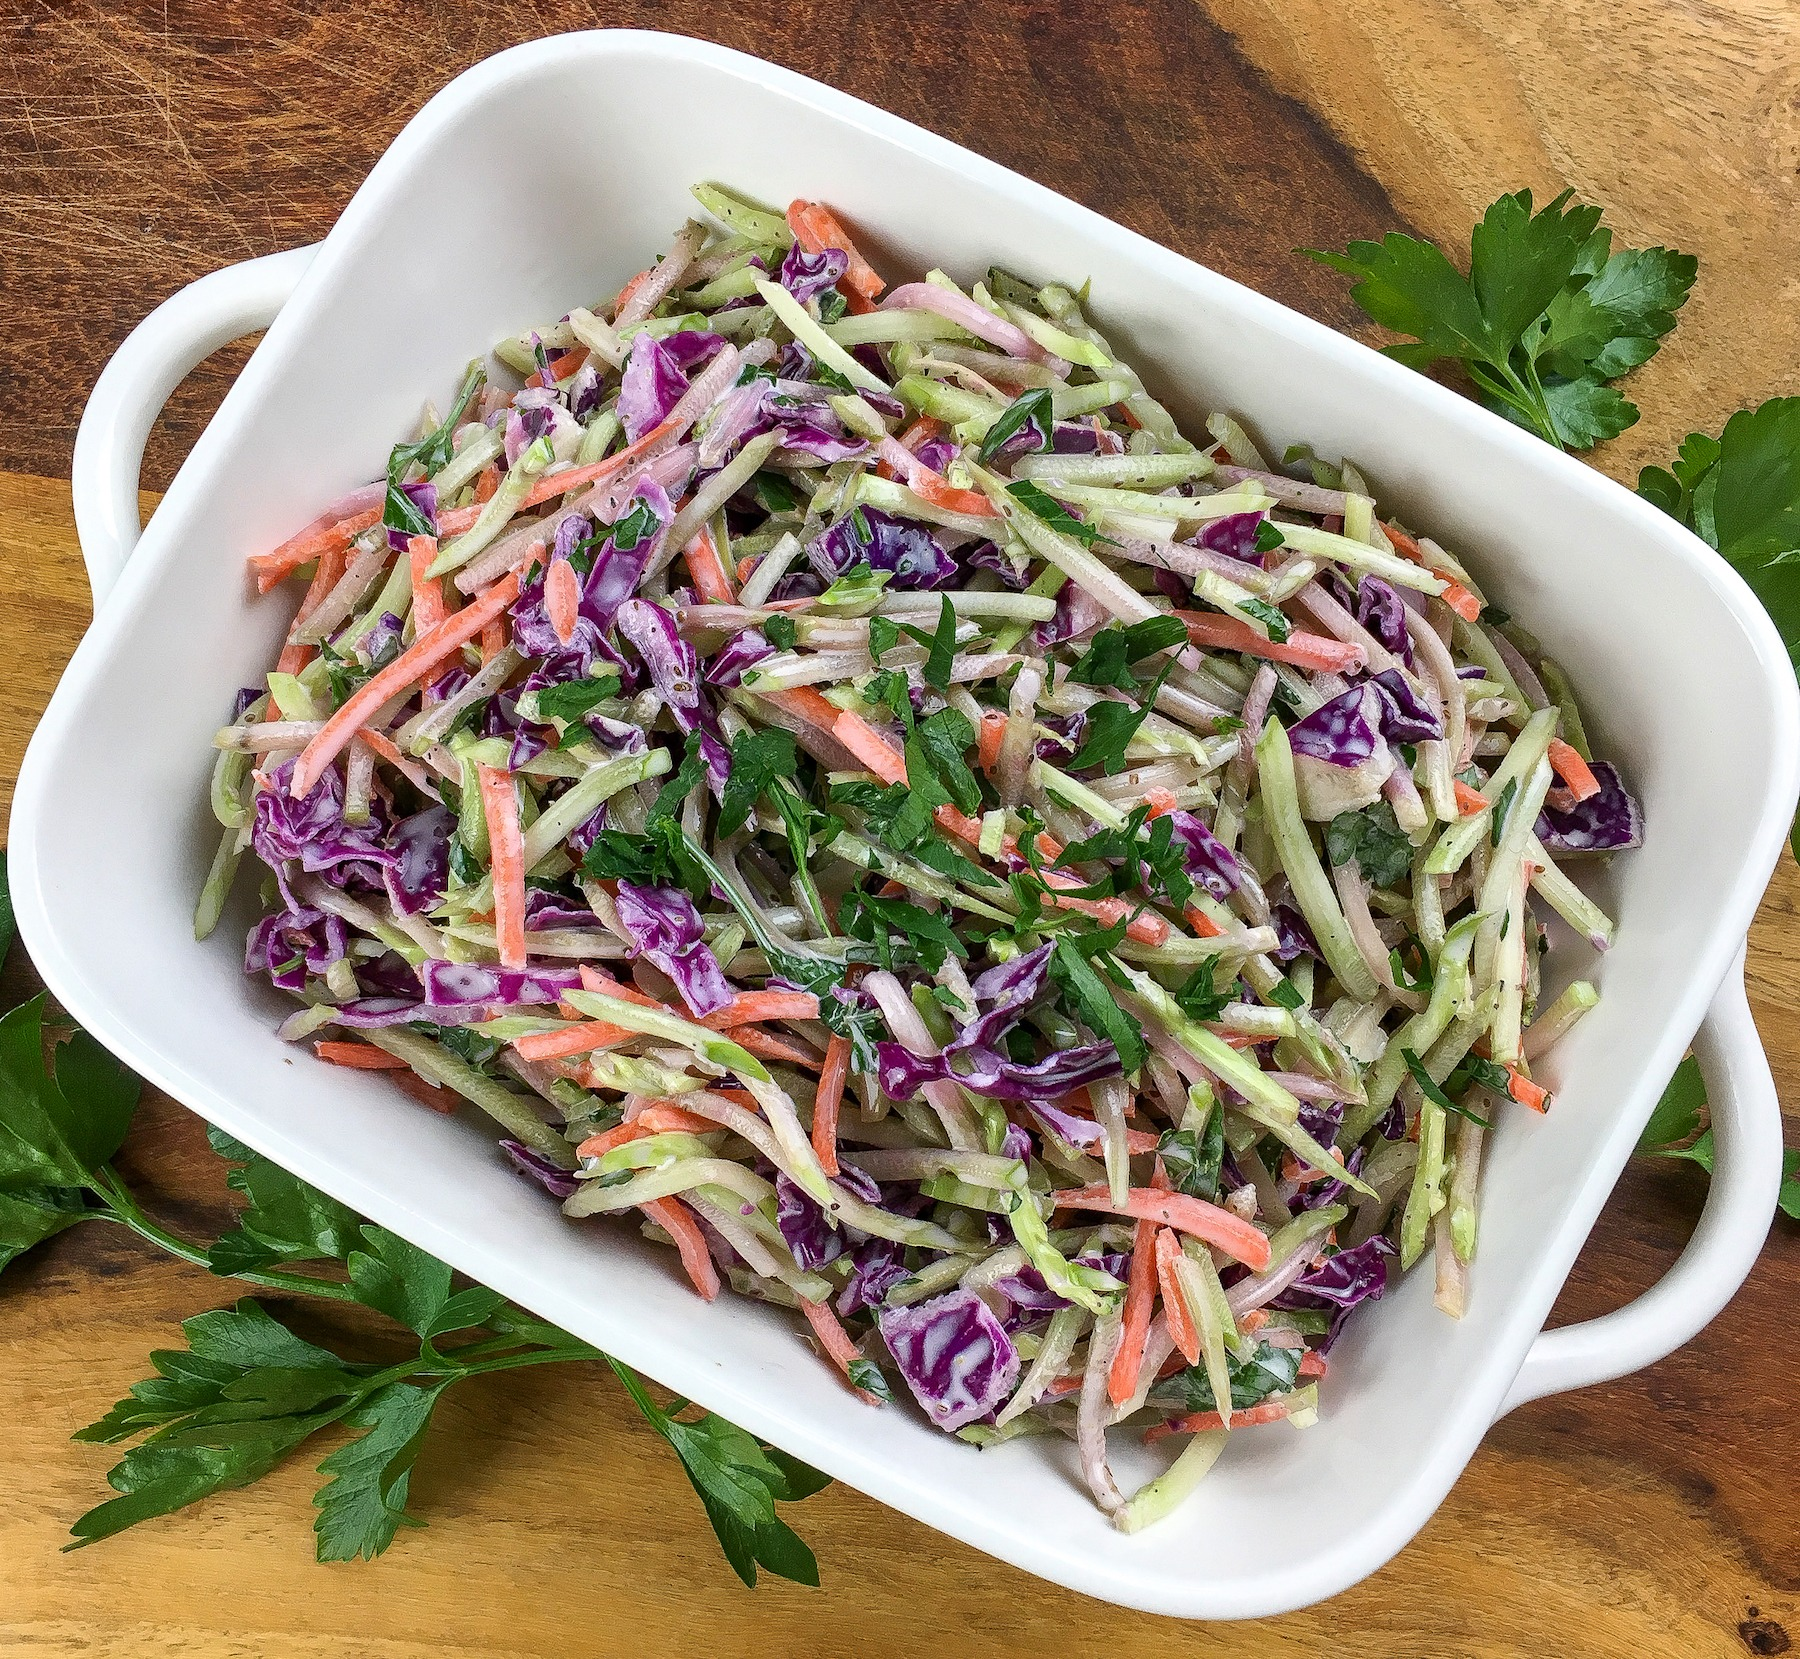 Broccoli Slaw; a Keto friendly side dish